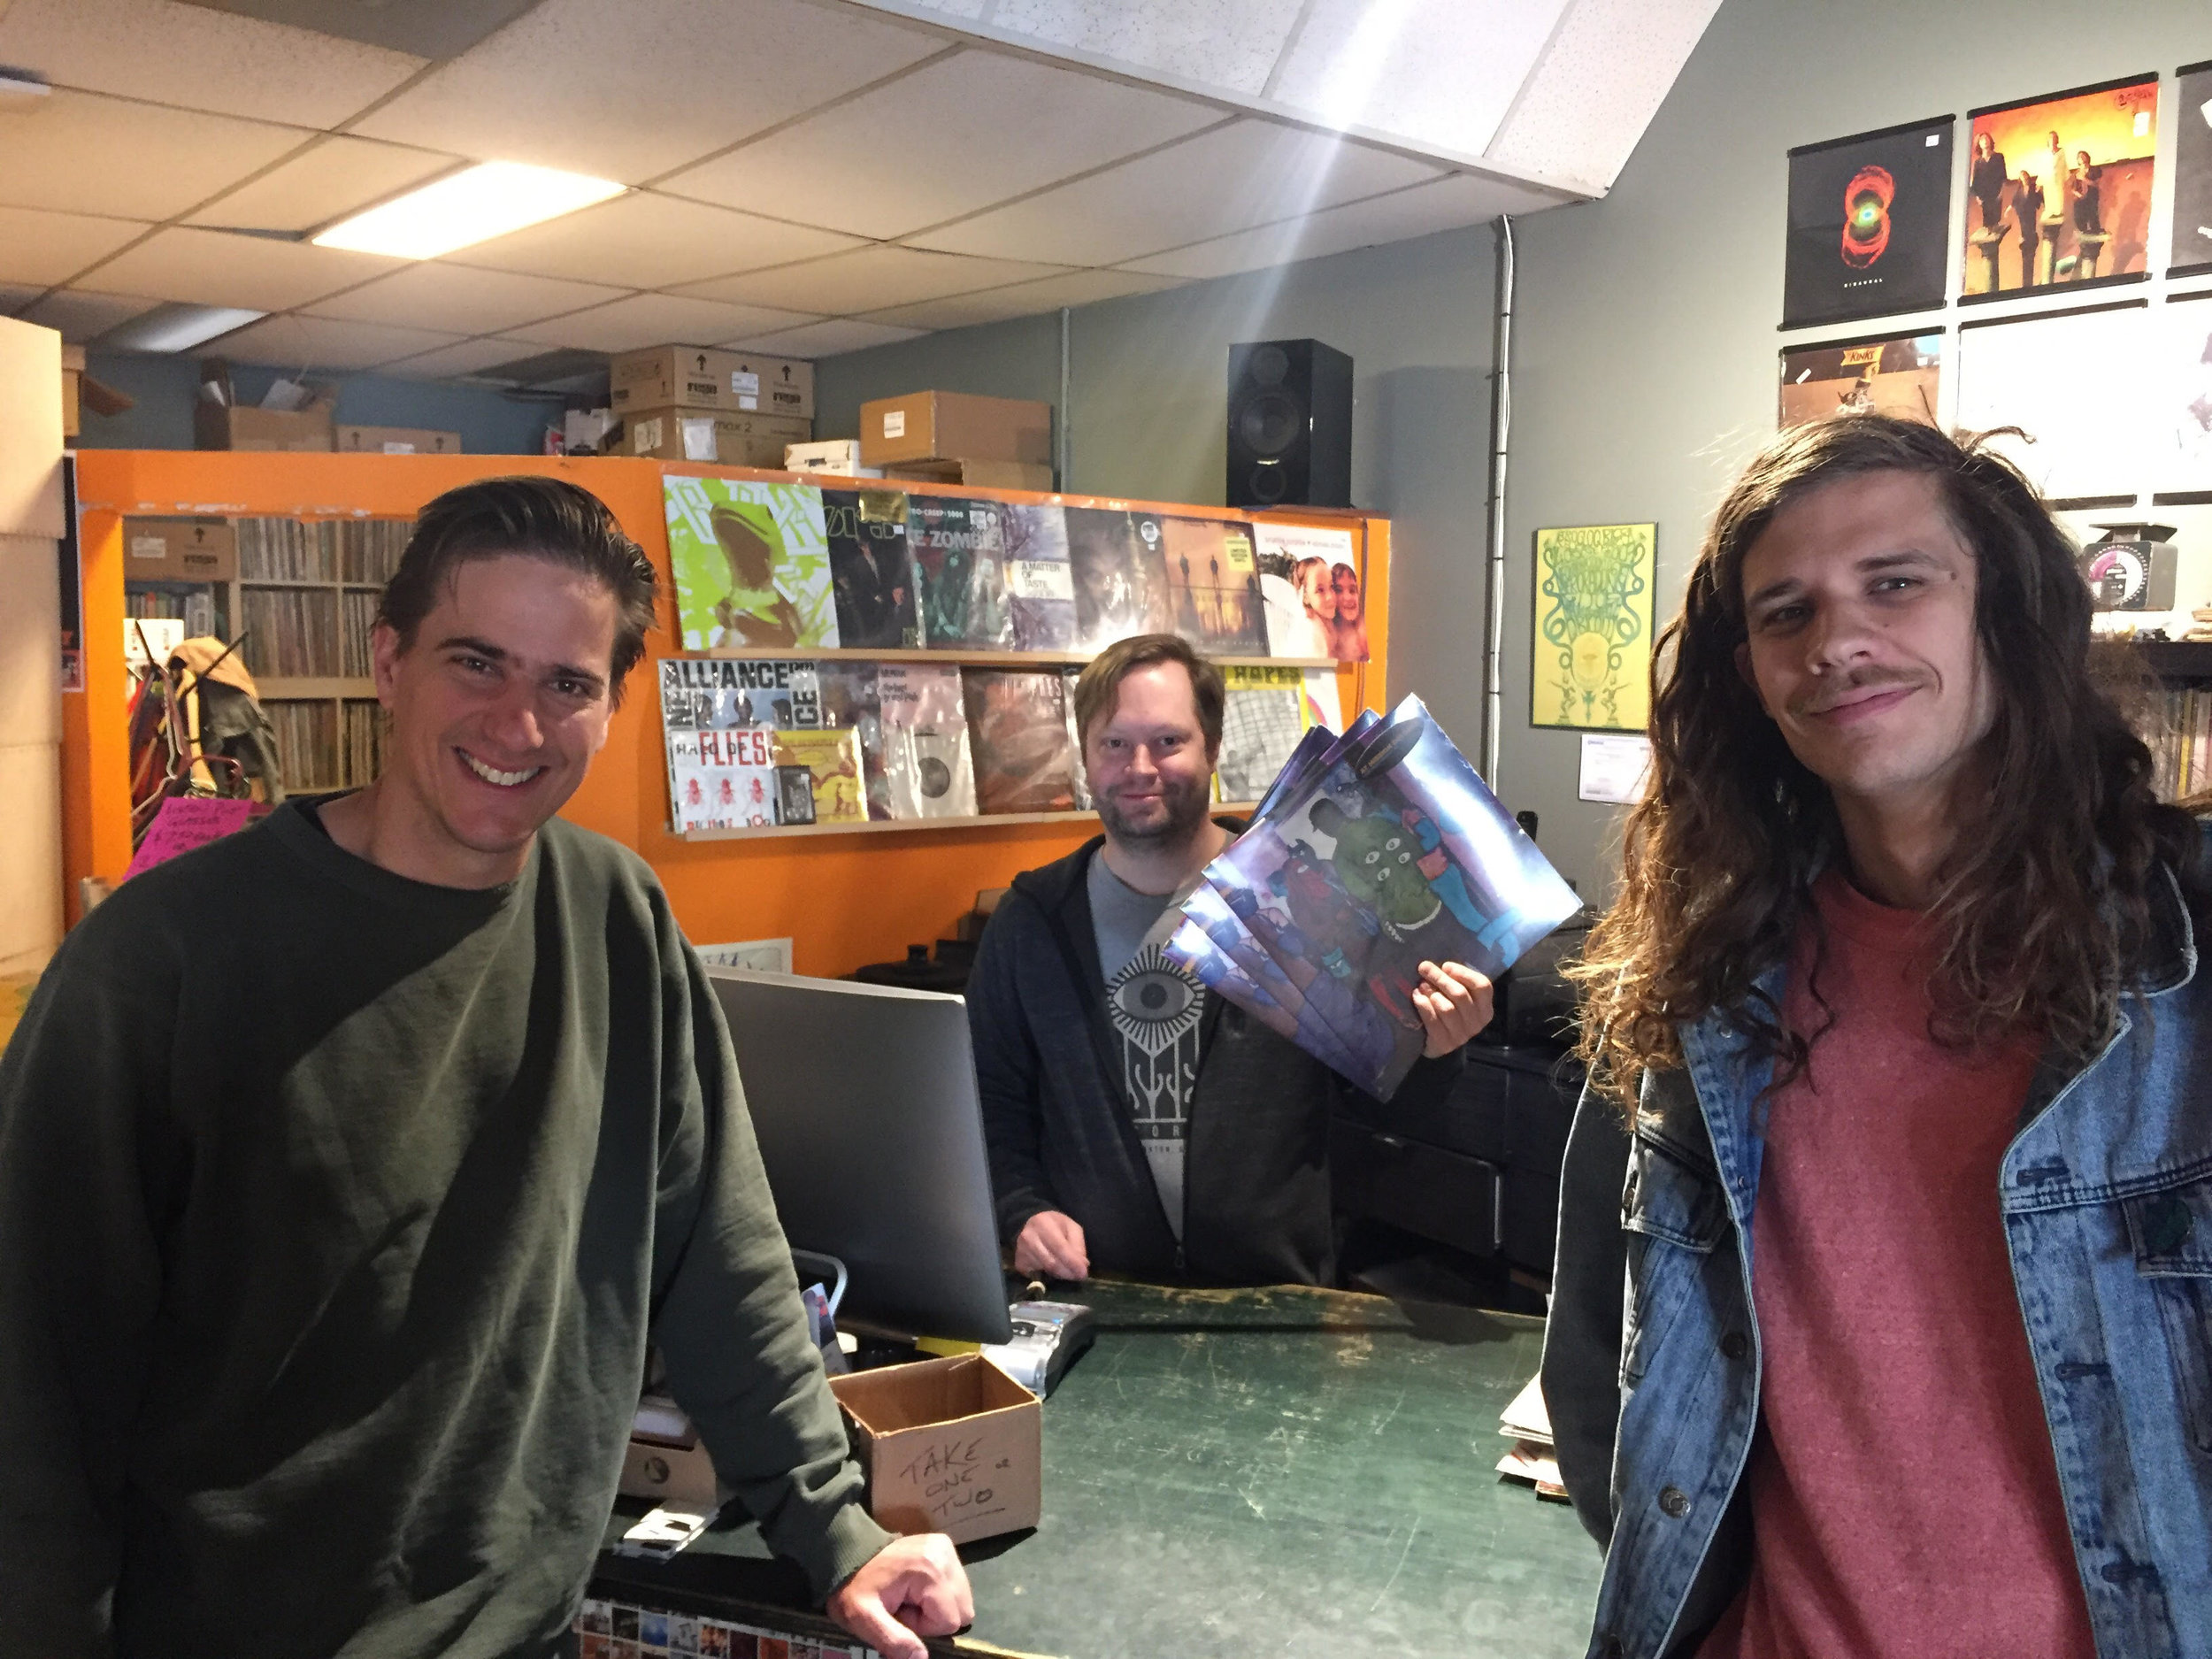 JP Lancaster (left) and Jared Doherty (right) with Kris Burwash (centre) from Listen Records in Edmonton, Alberta.